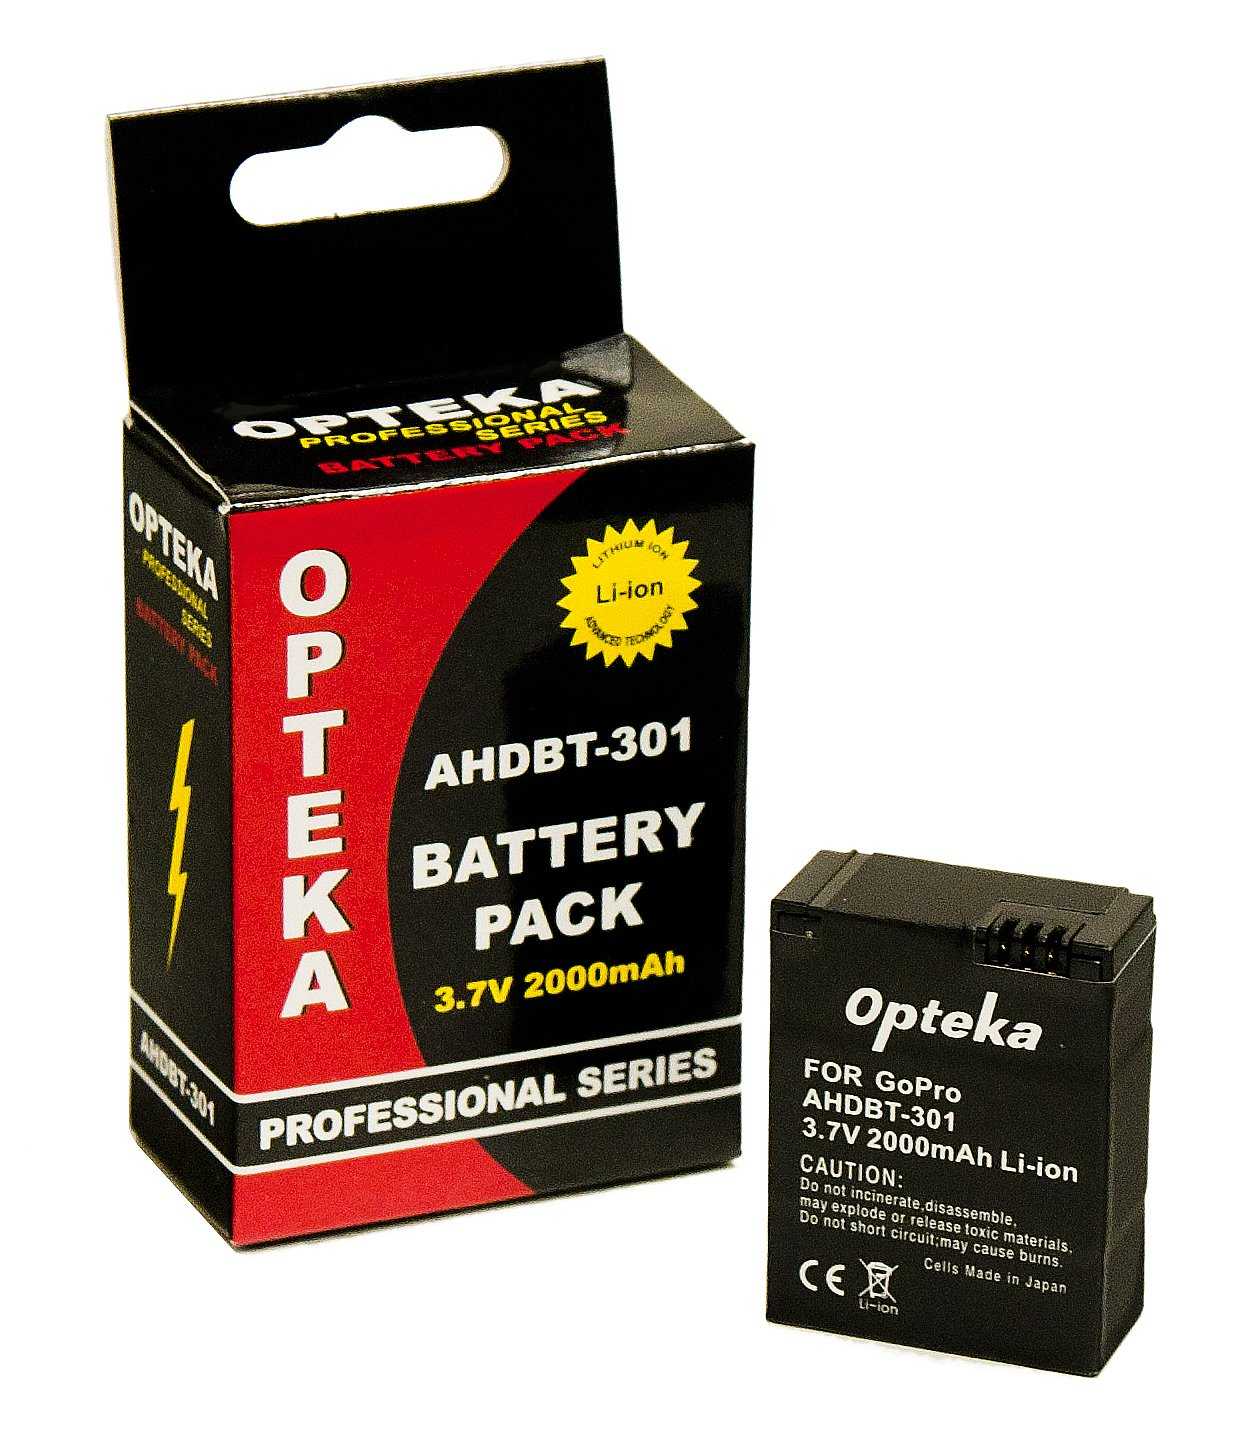 Opteka 2000mAh 3.7V AHDBT-301 Battery Pack for GoPro Hero 3 3+